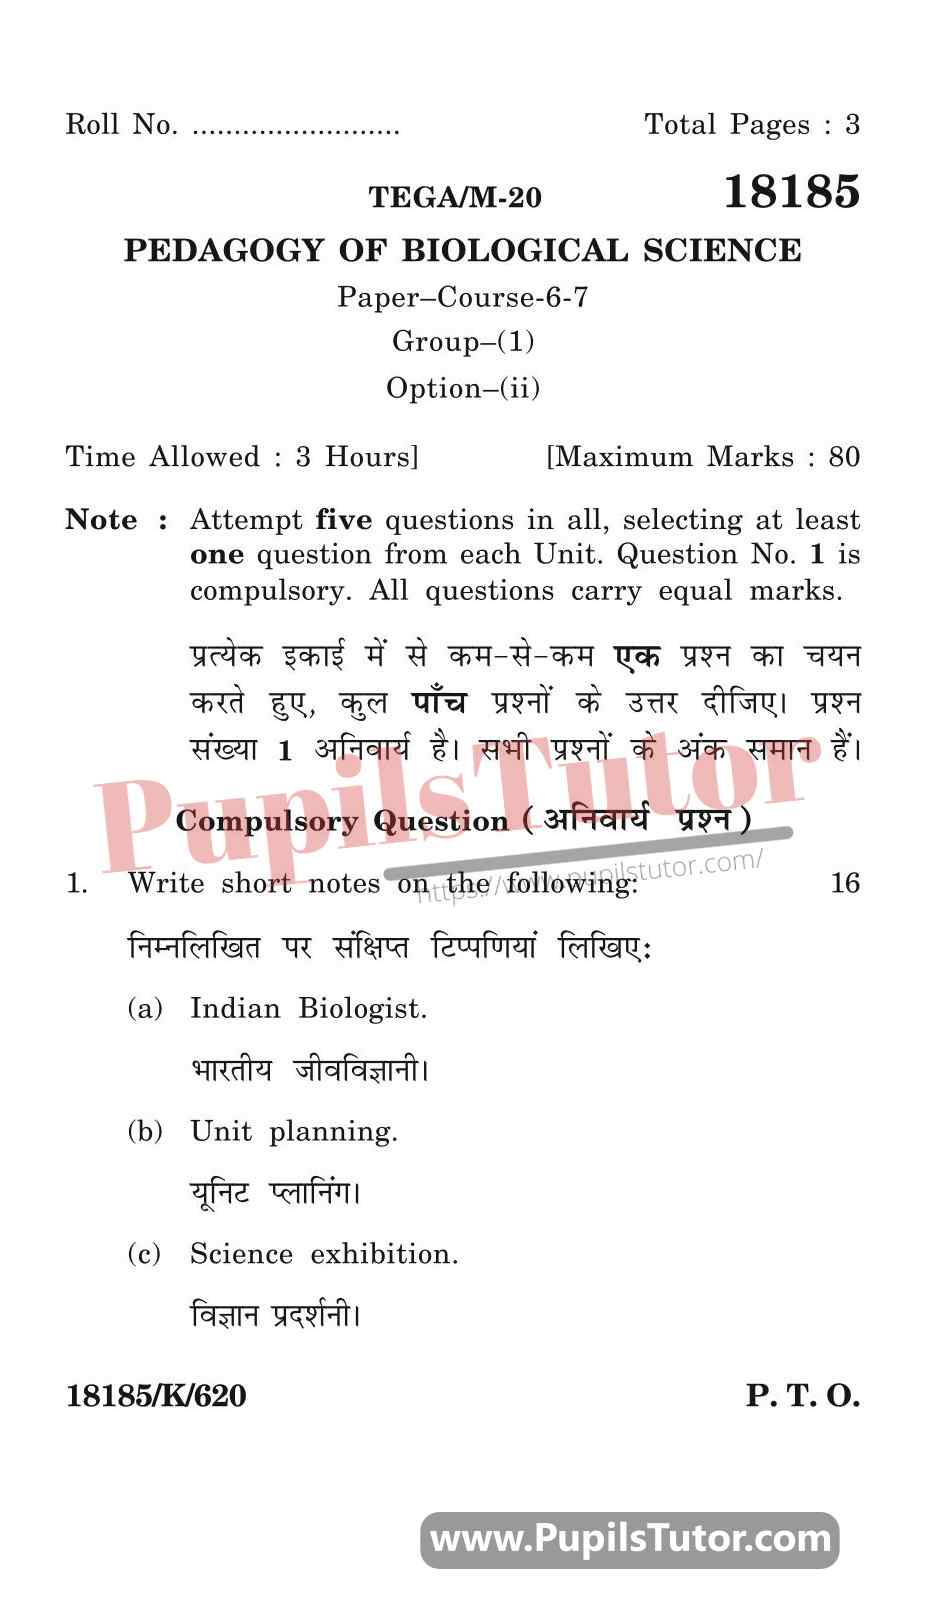 KUK (Kurukshetra University, Haryana) Pedagogy Of Biological Science Question Paper 2020 For B.Ed 1st And 2nd Year And All The 4 Semesters In English And Hindi Medium Free Download PDF - Page 1 - Pupils Tutor